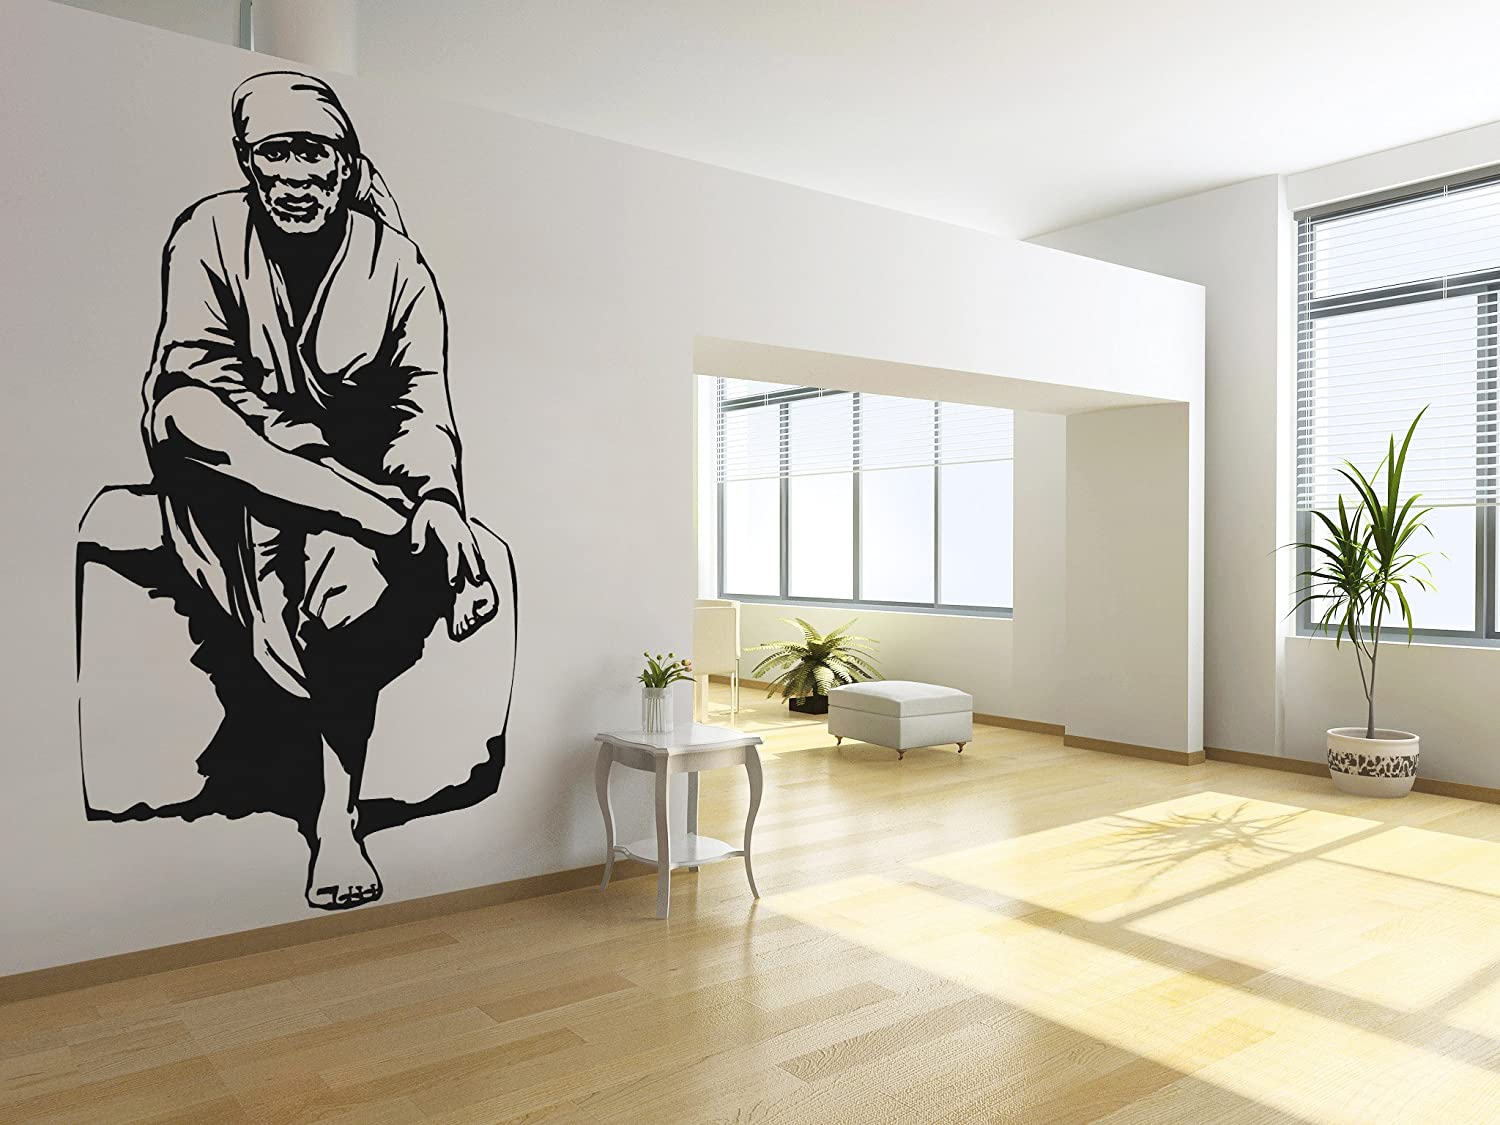 Buy sai baba wall sticker decal online at low prices in india buy sai baba wall sticker decal online at low prices in india amazon amipublicfo Choice Image